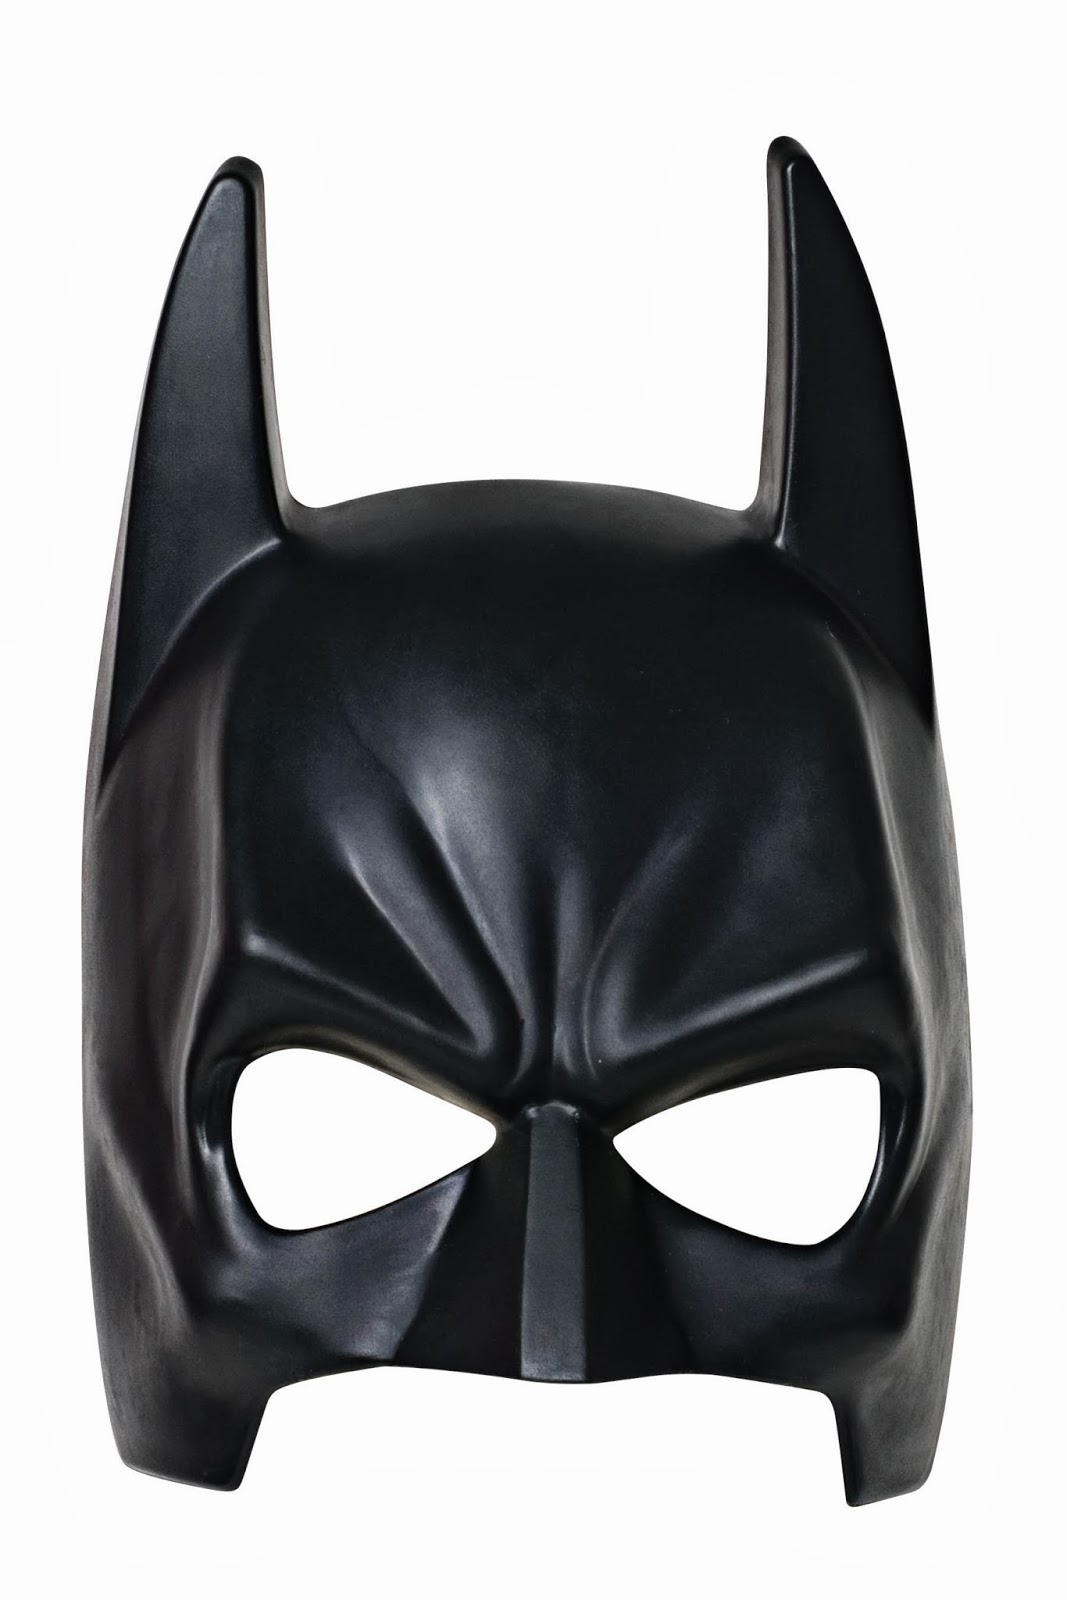 It is a picture of Striking Batman Mask Printable